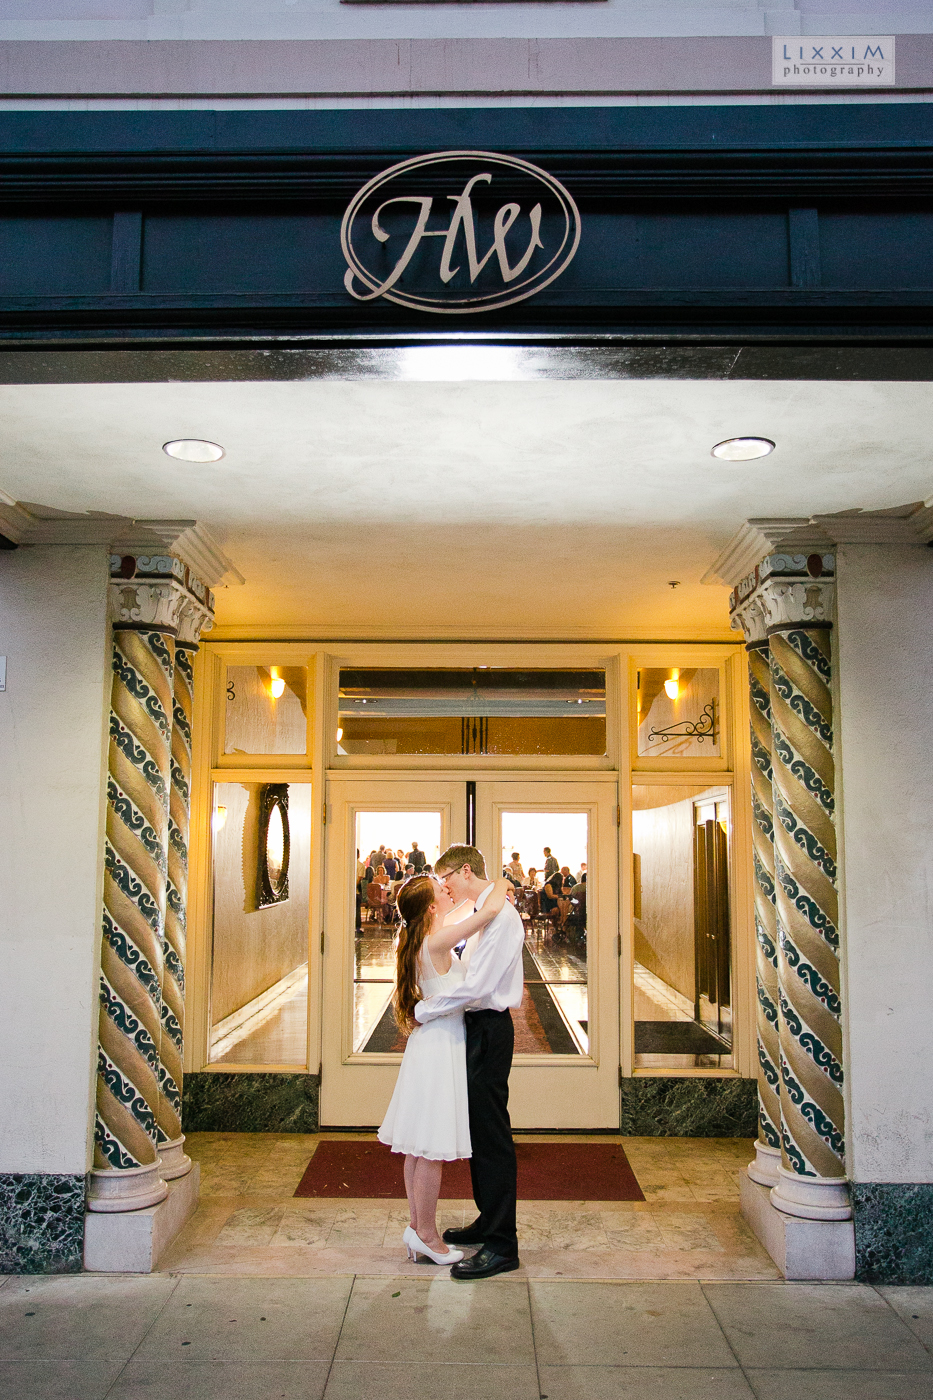 hotel-woodland-ca-wedding-photographer-sacramento-lixxim-hw